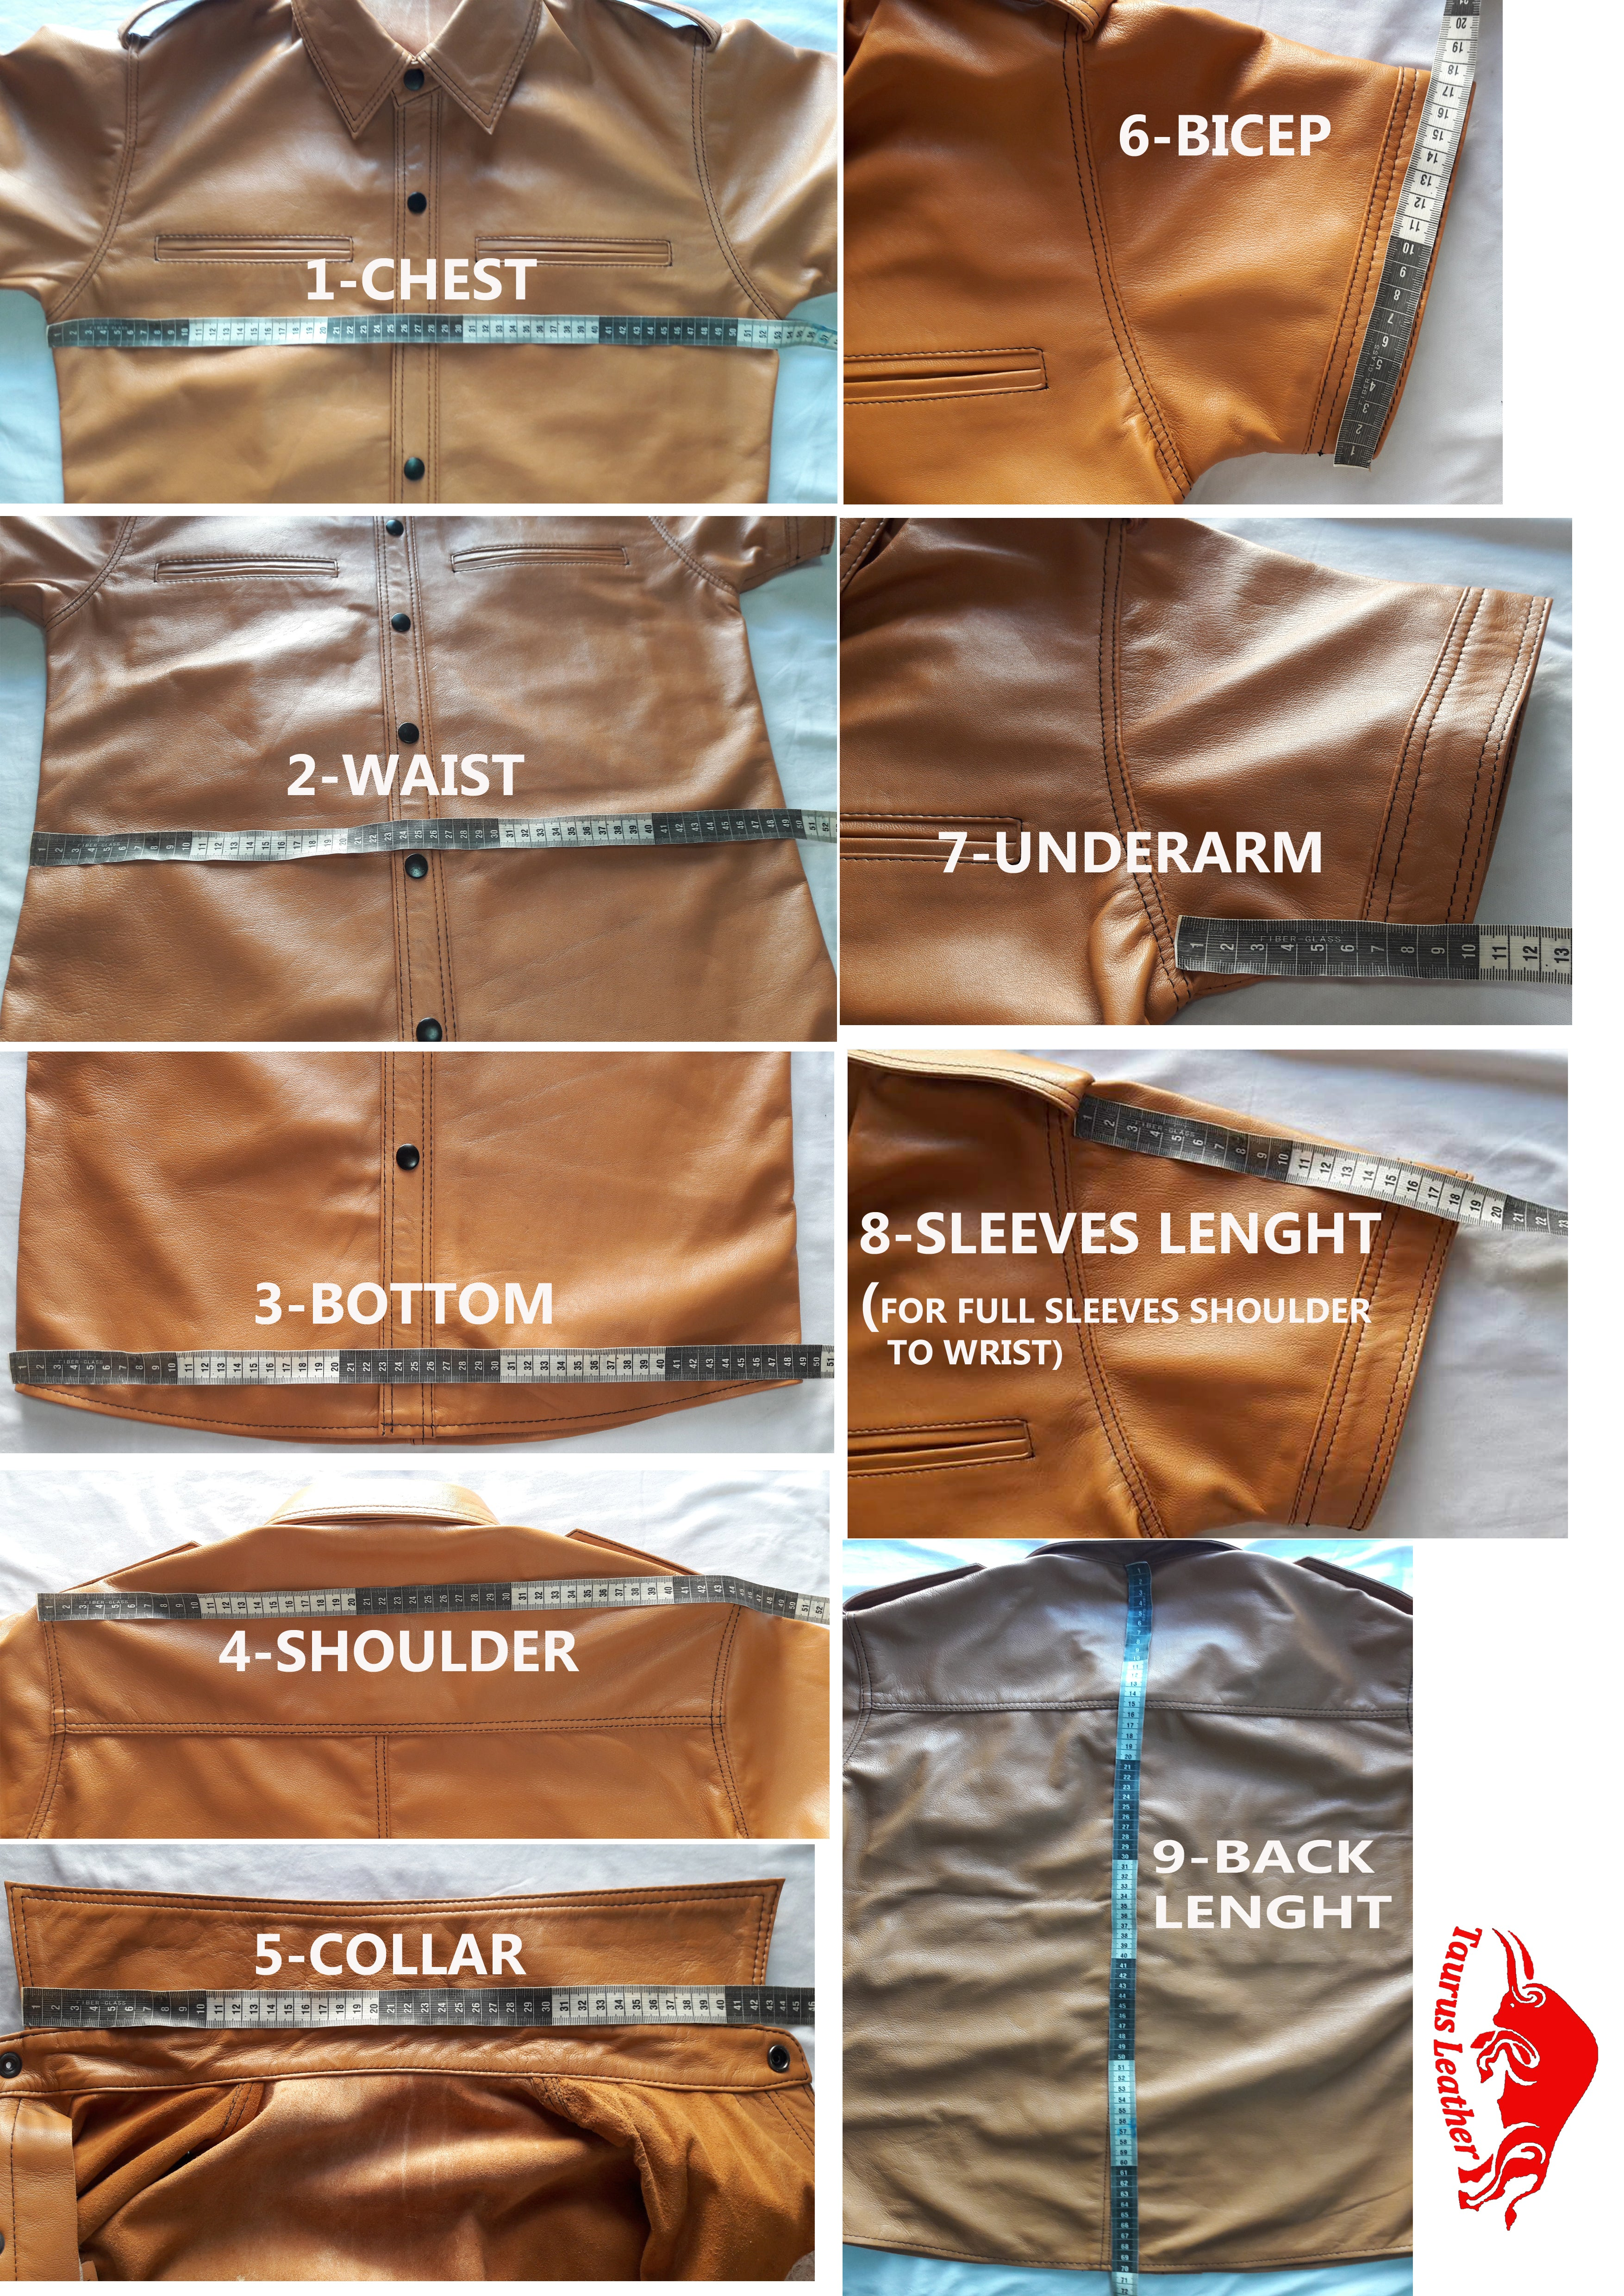 TAURUS LEATHER Tank Color Cow Leather Jacket Wax Article